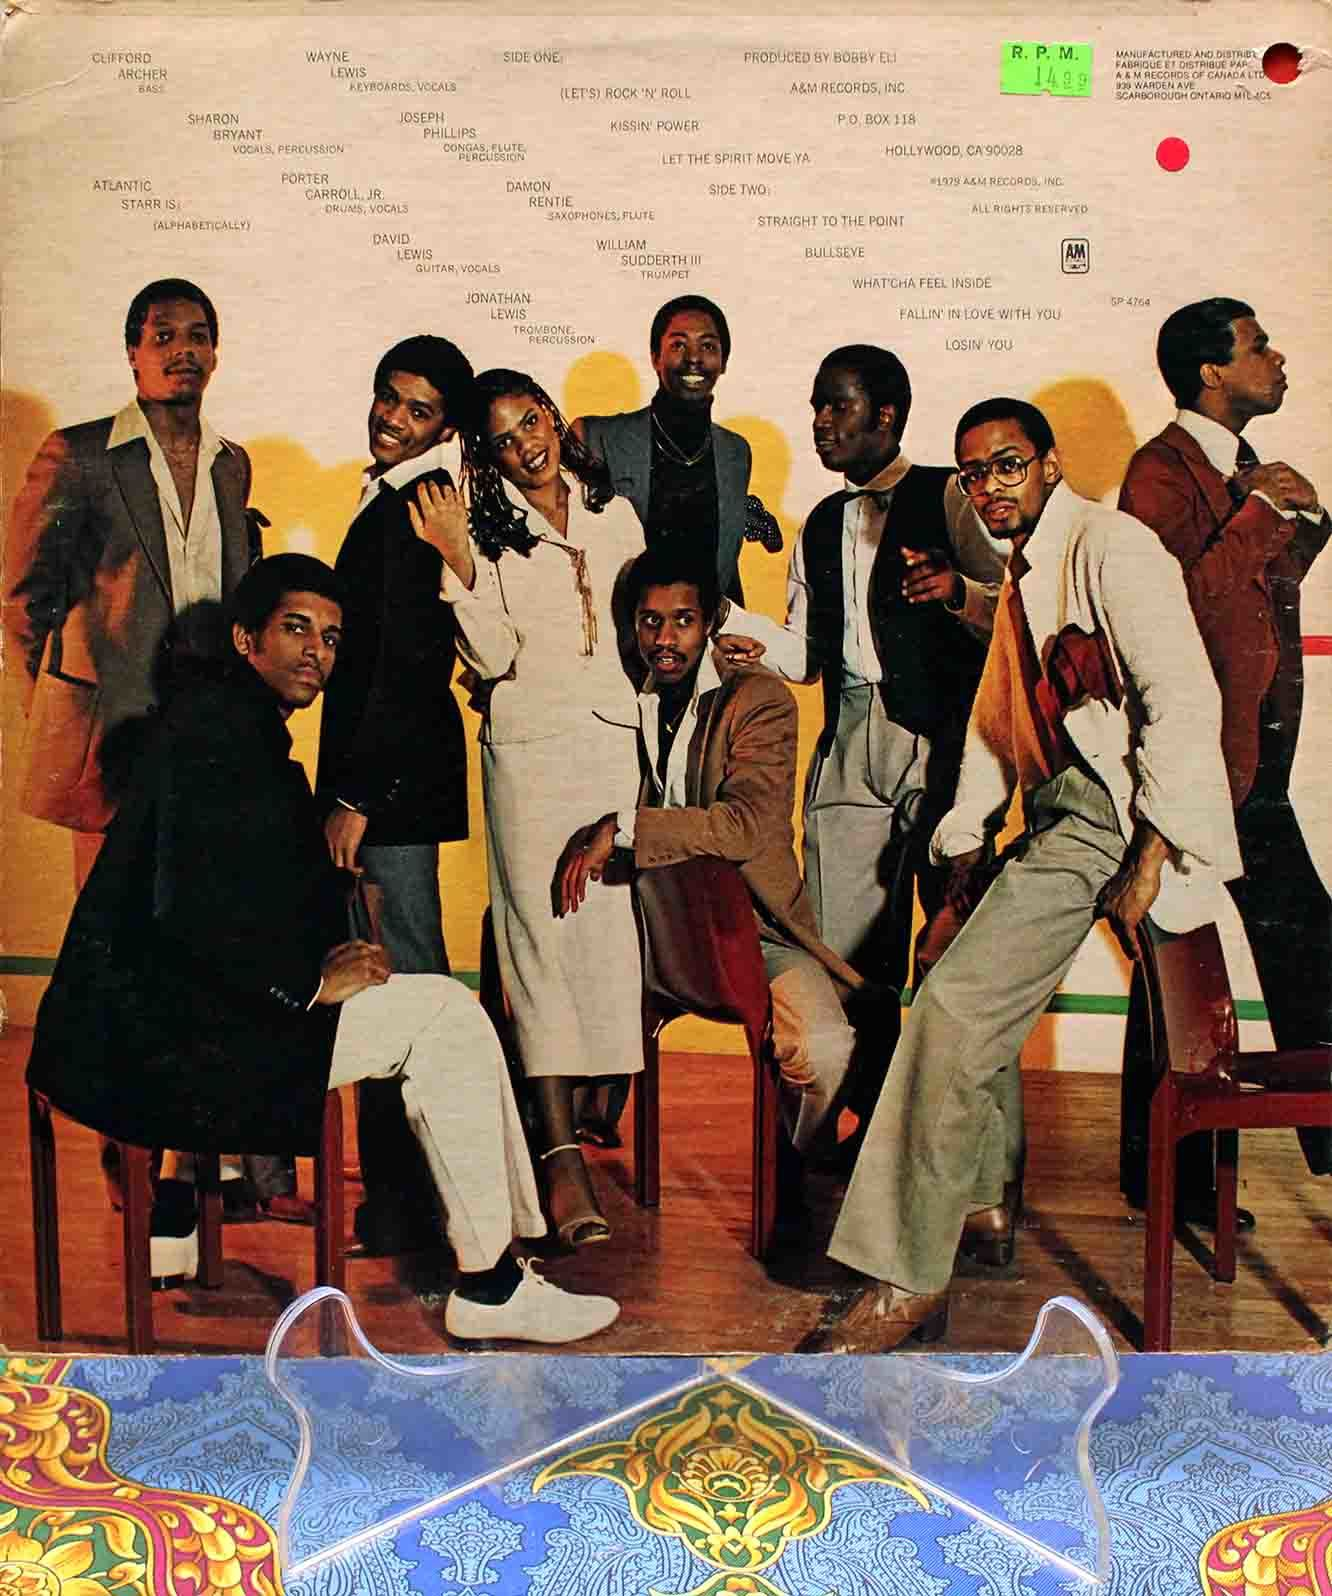 Atlantic Starr Straight To The Point 02